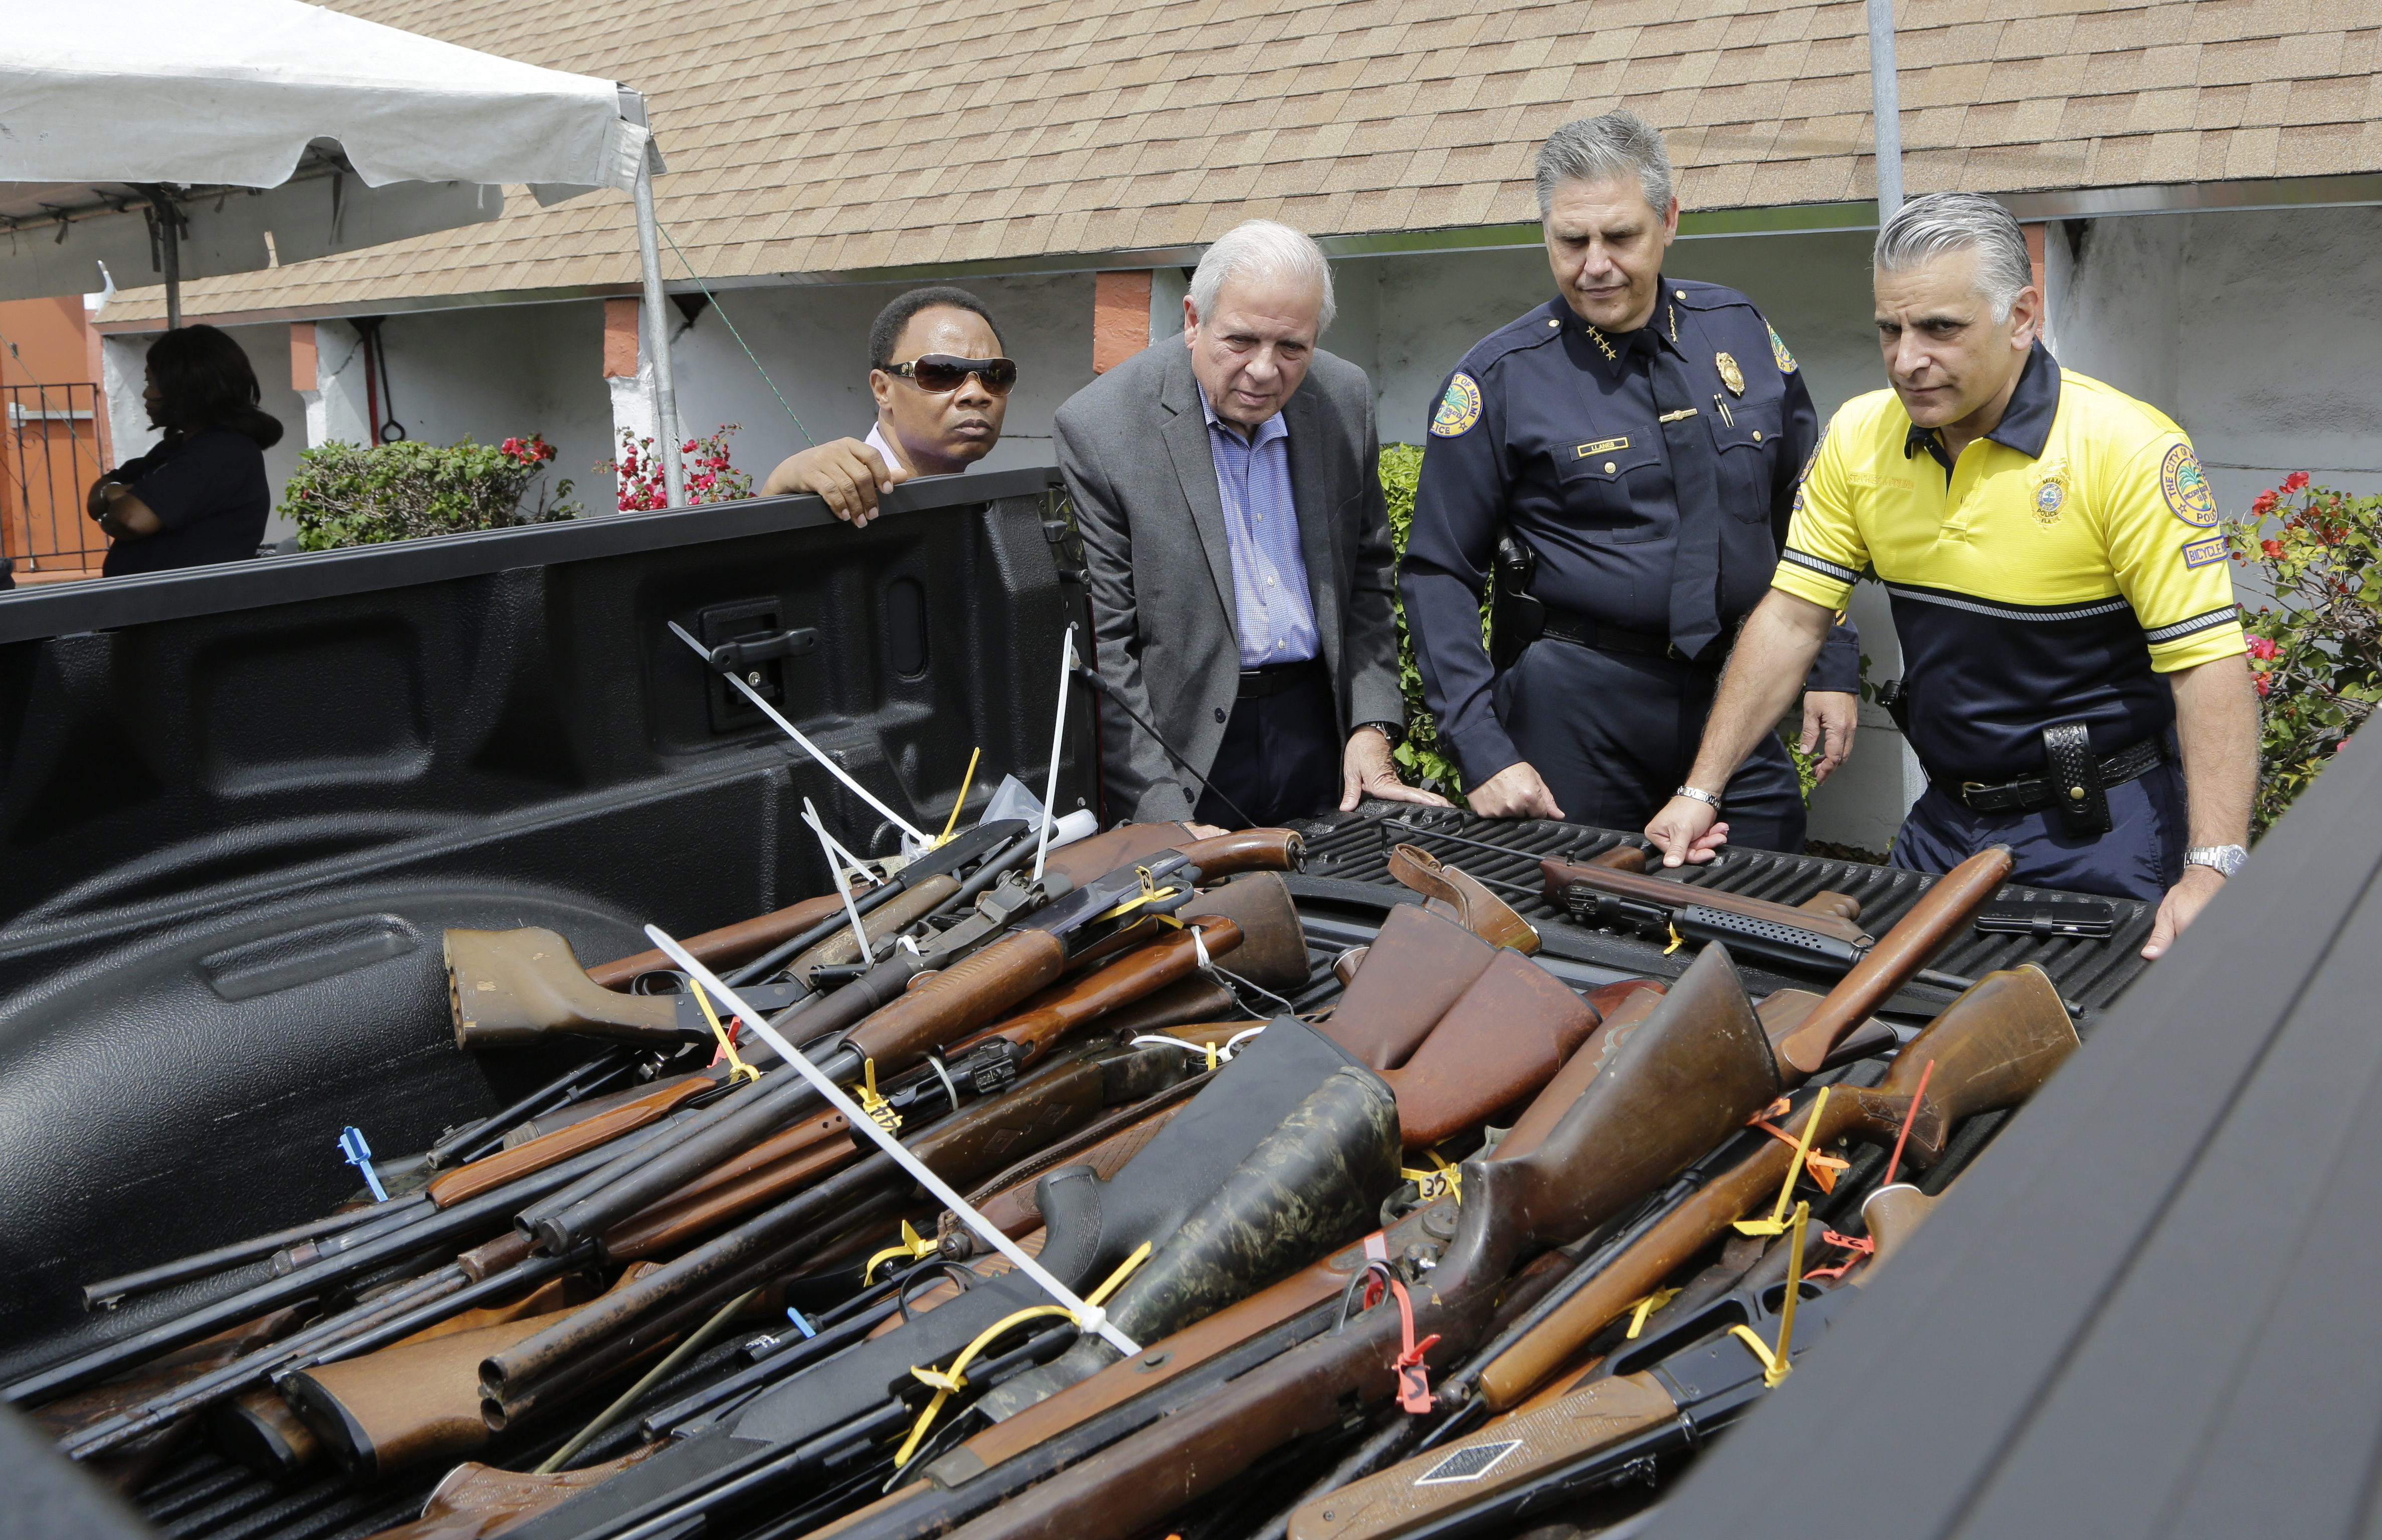 'Perception of action': U.S. wrestles with gun buybacks after mass shootings